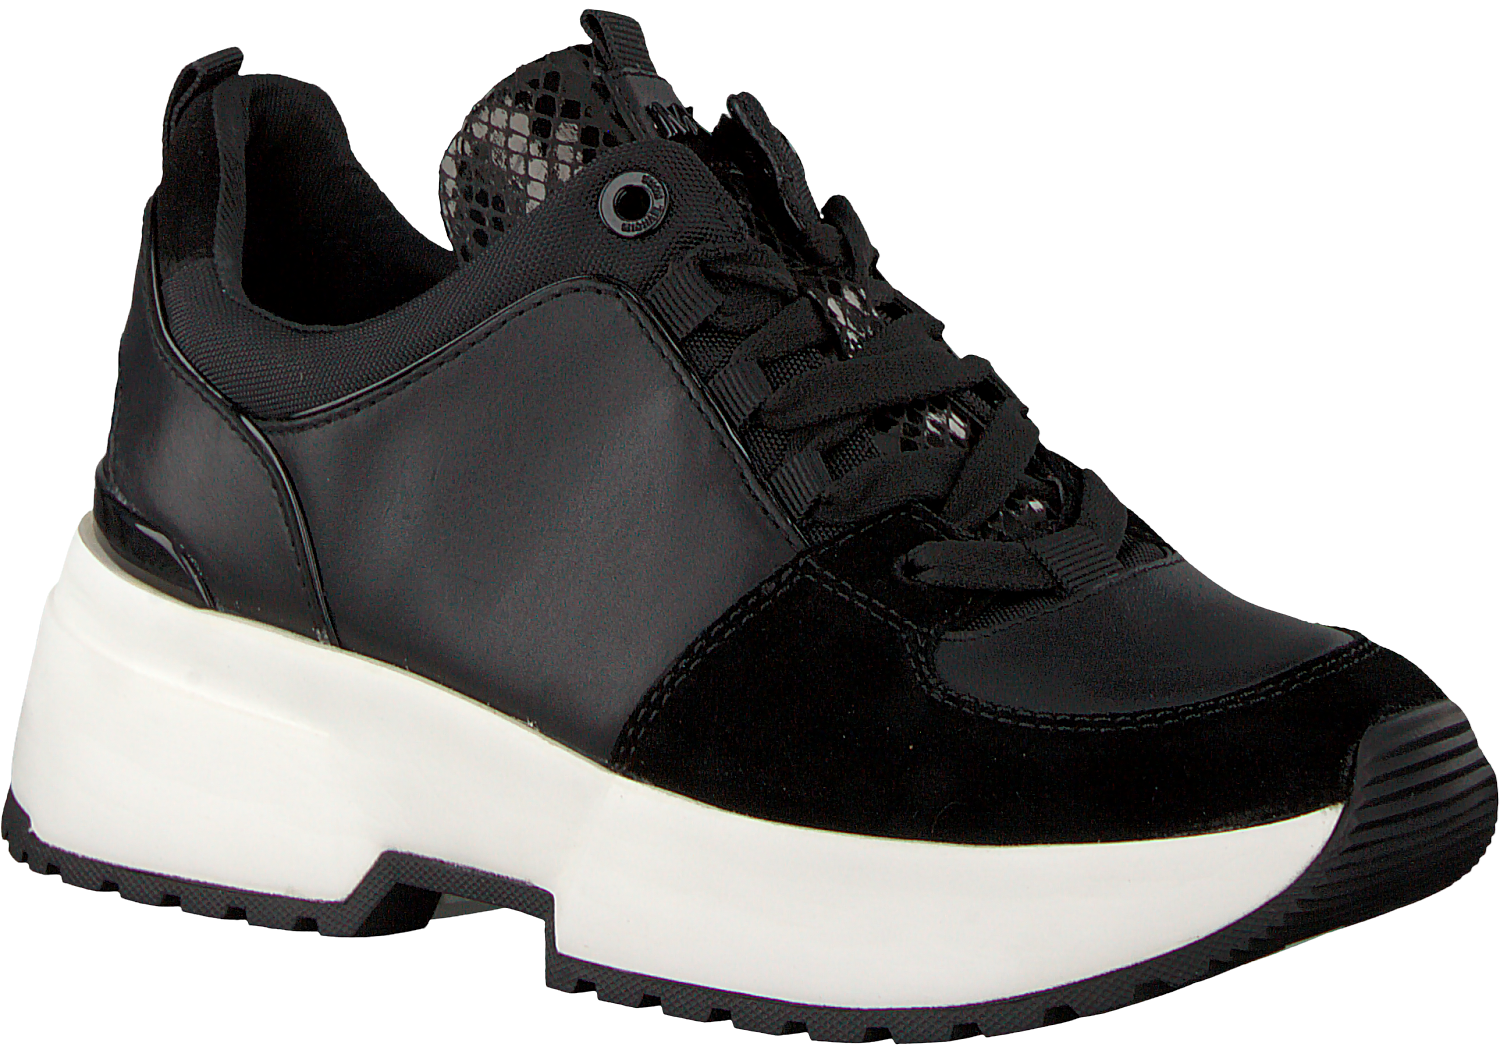 Michael Kors Trainer Noir be Baskets Omoda En Cosmo wknOP0